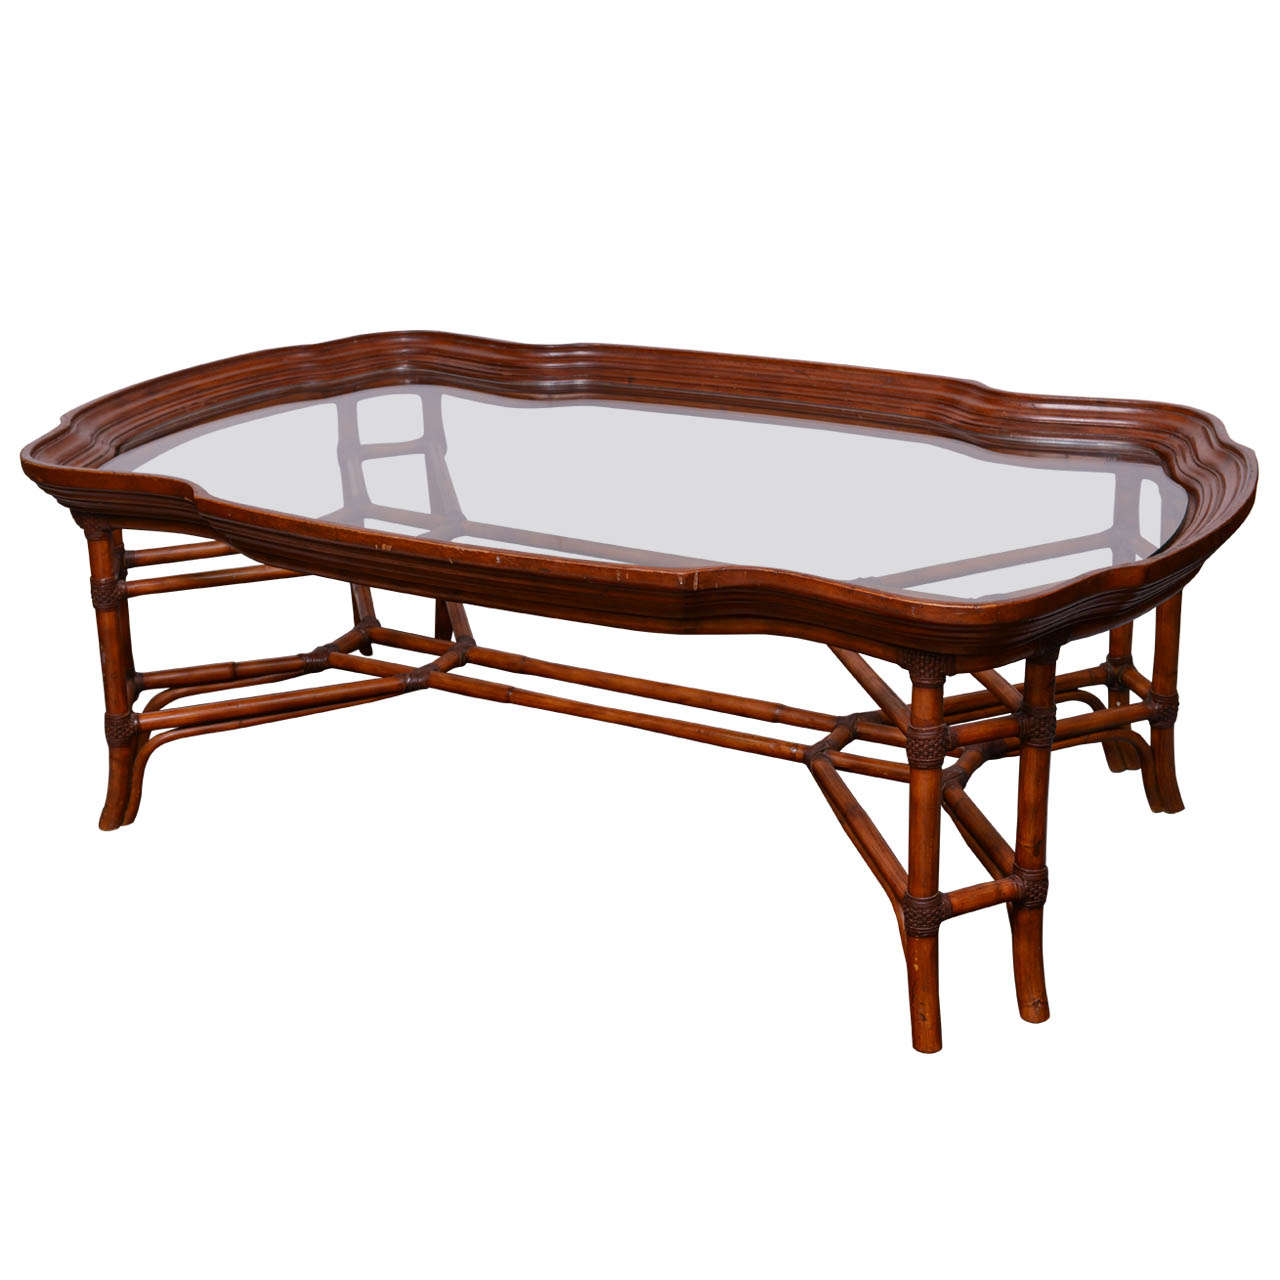 Large faux bamboo coffee table with glass top at 1stdibs Glass top for coffee table